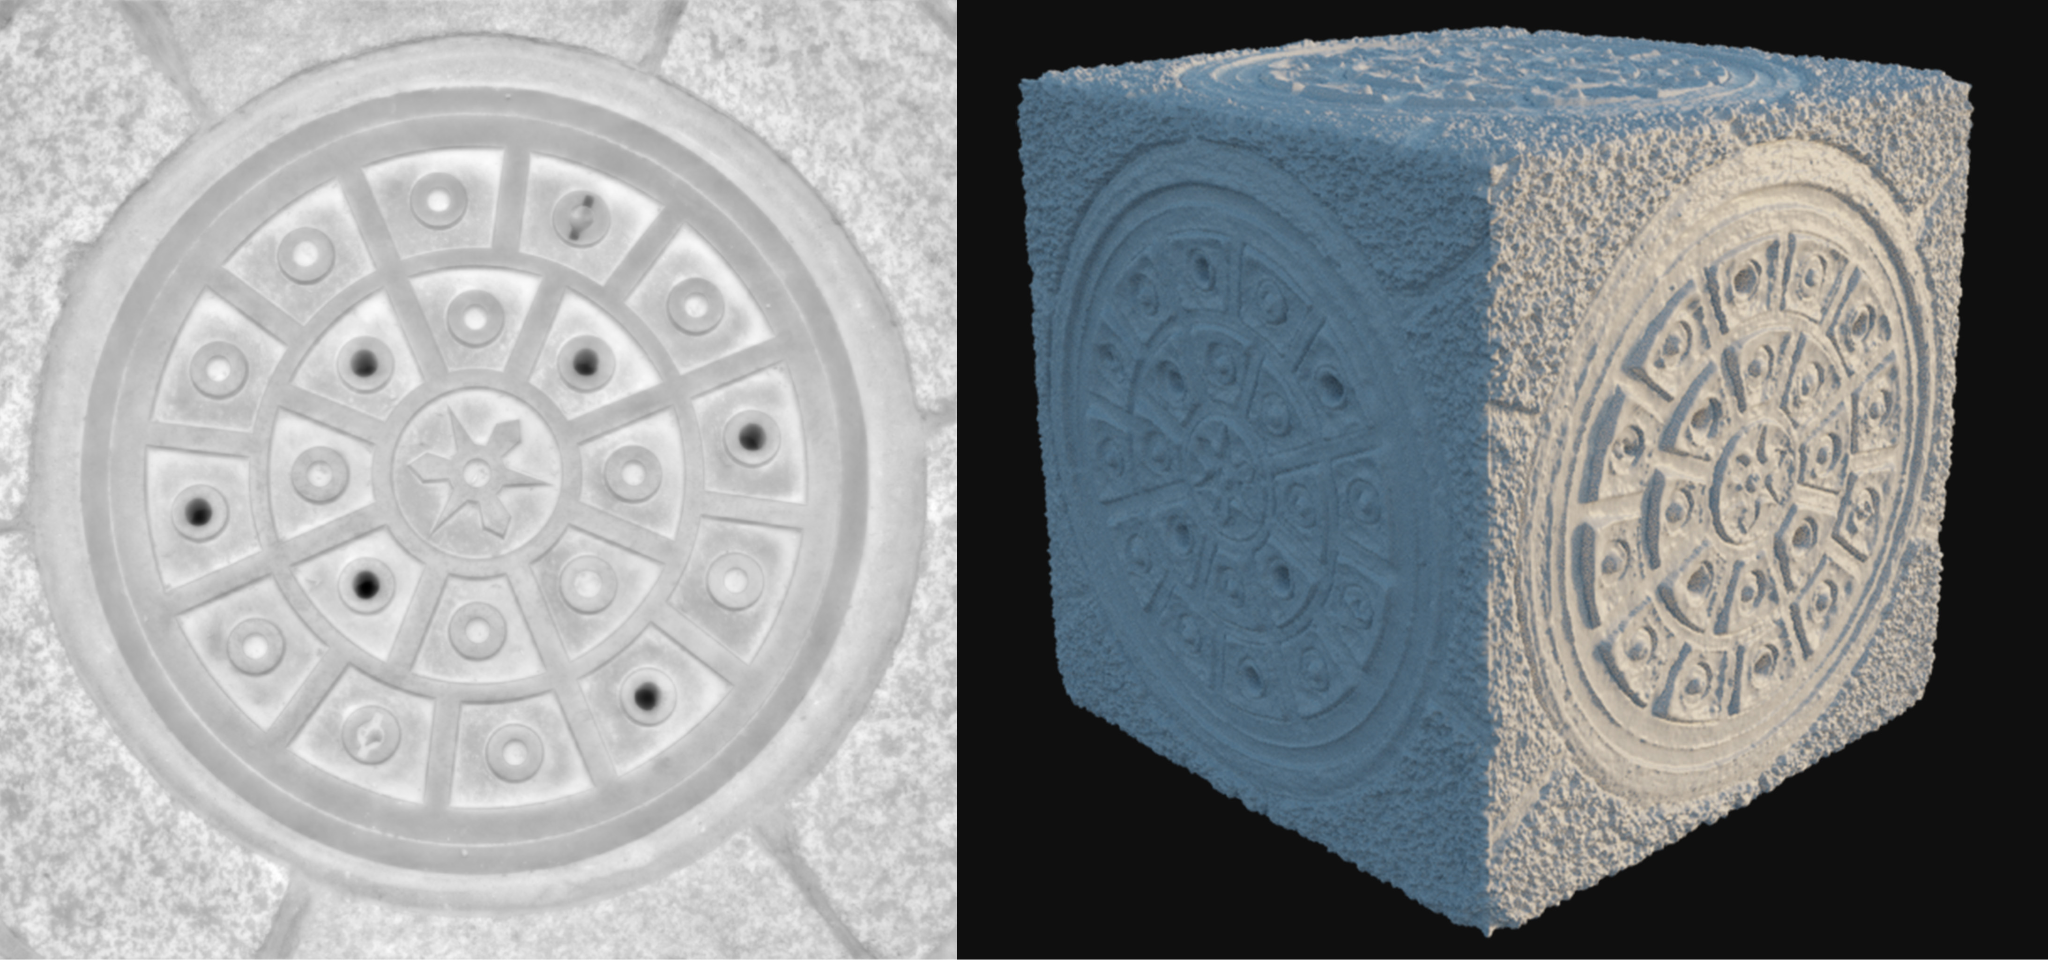 A model using displacement map